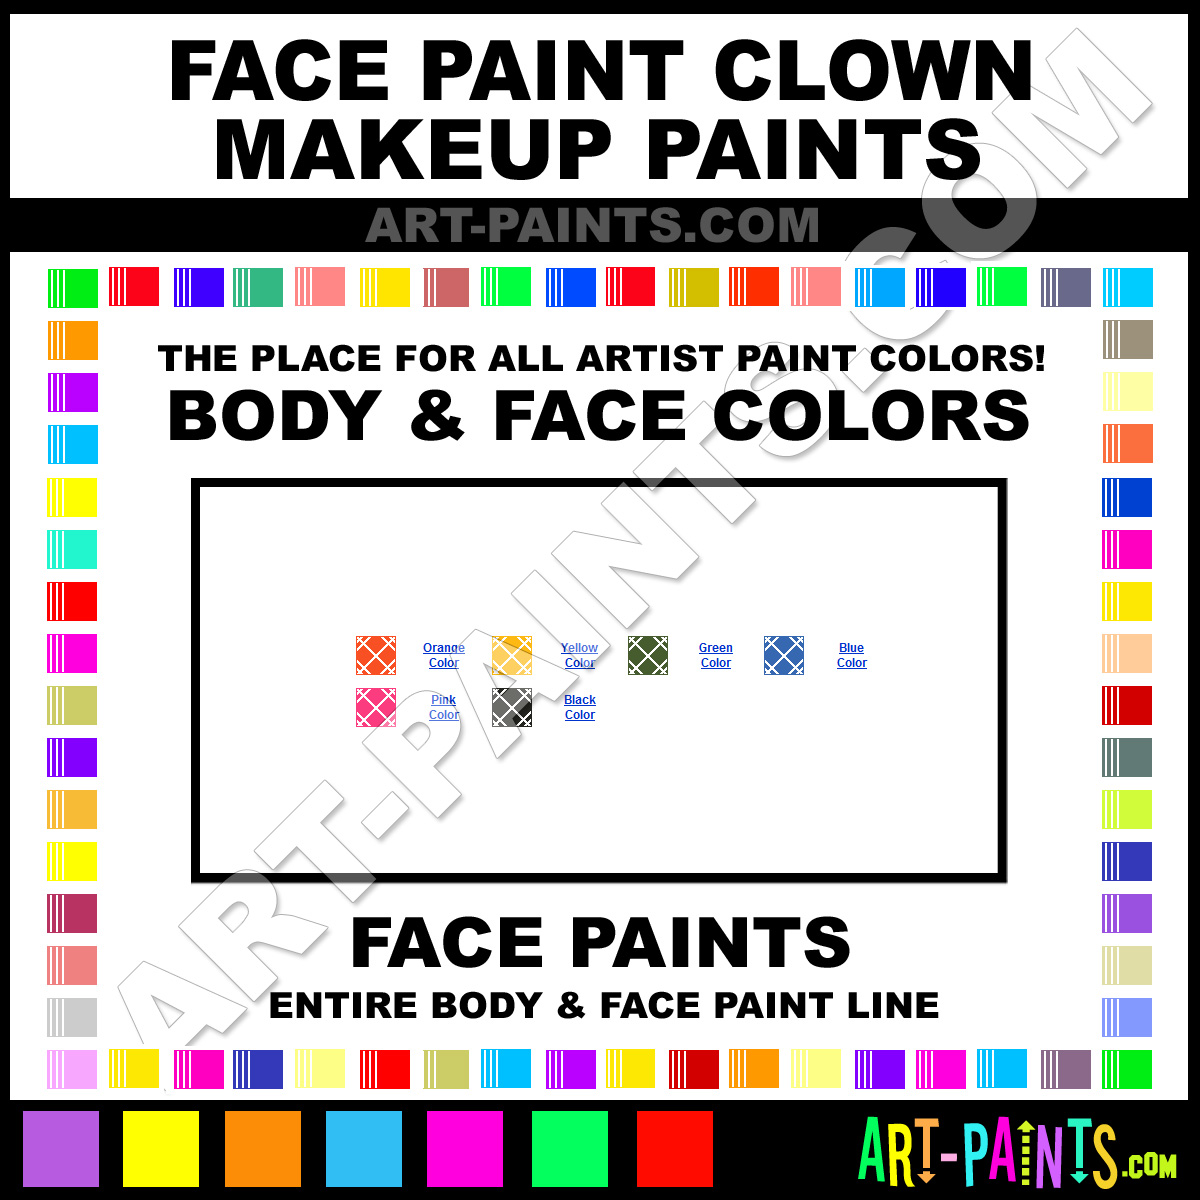 Easy Clown Face Painting Design - About.com Painting - Learn to